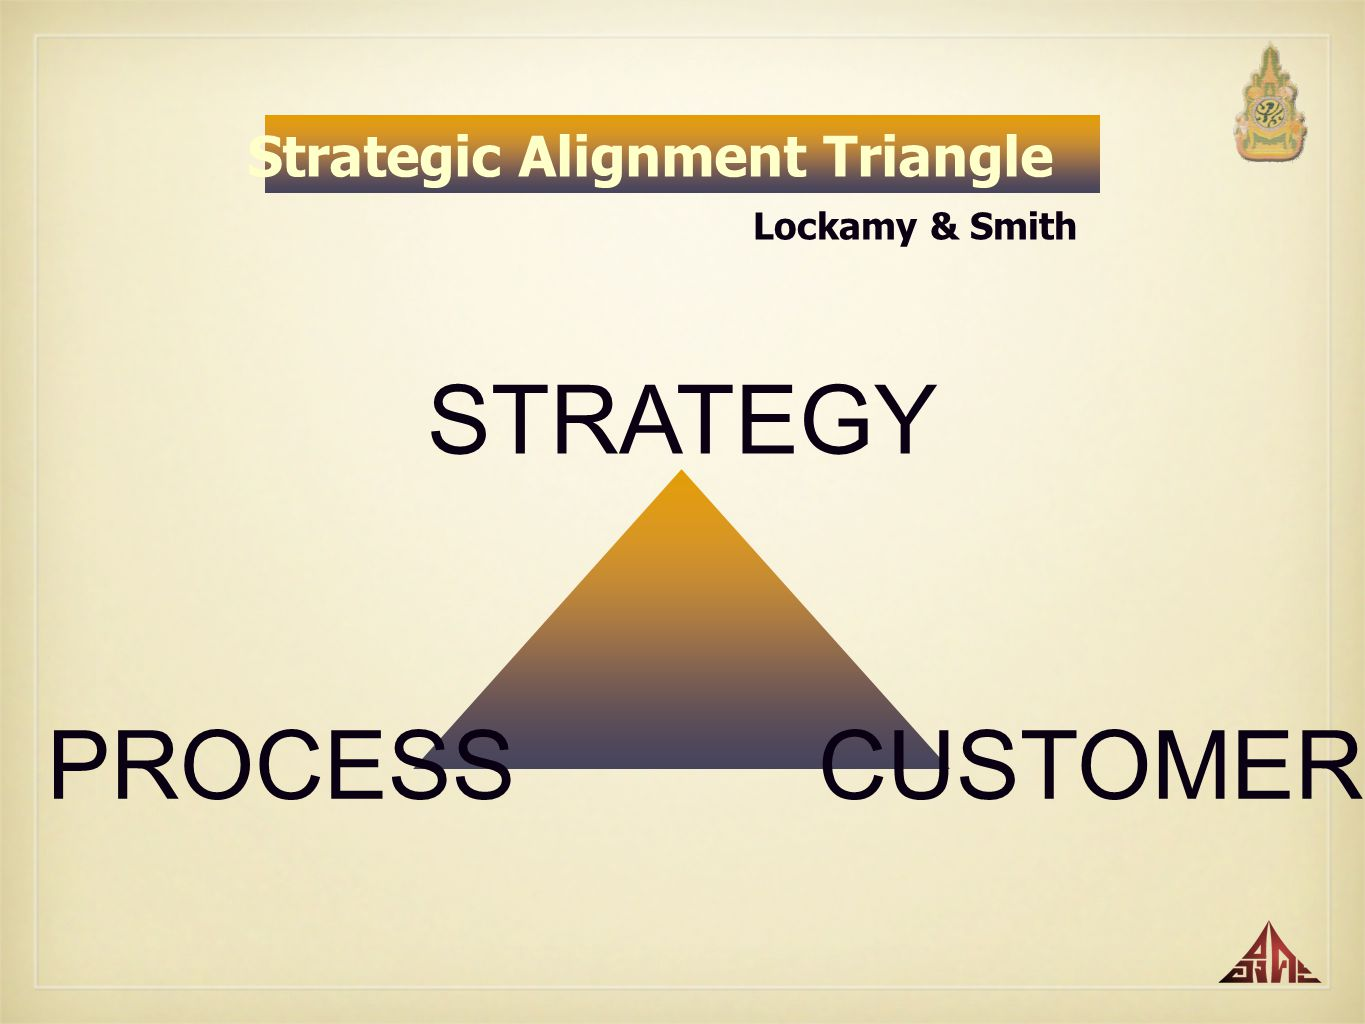 Strategic Alignment Triangle